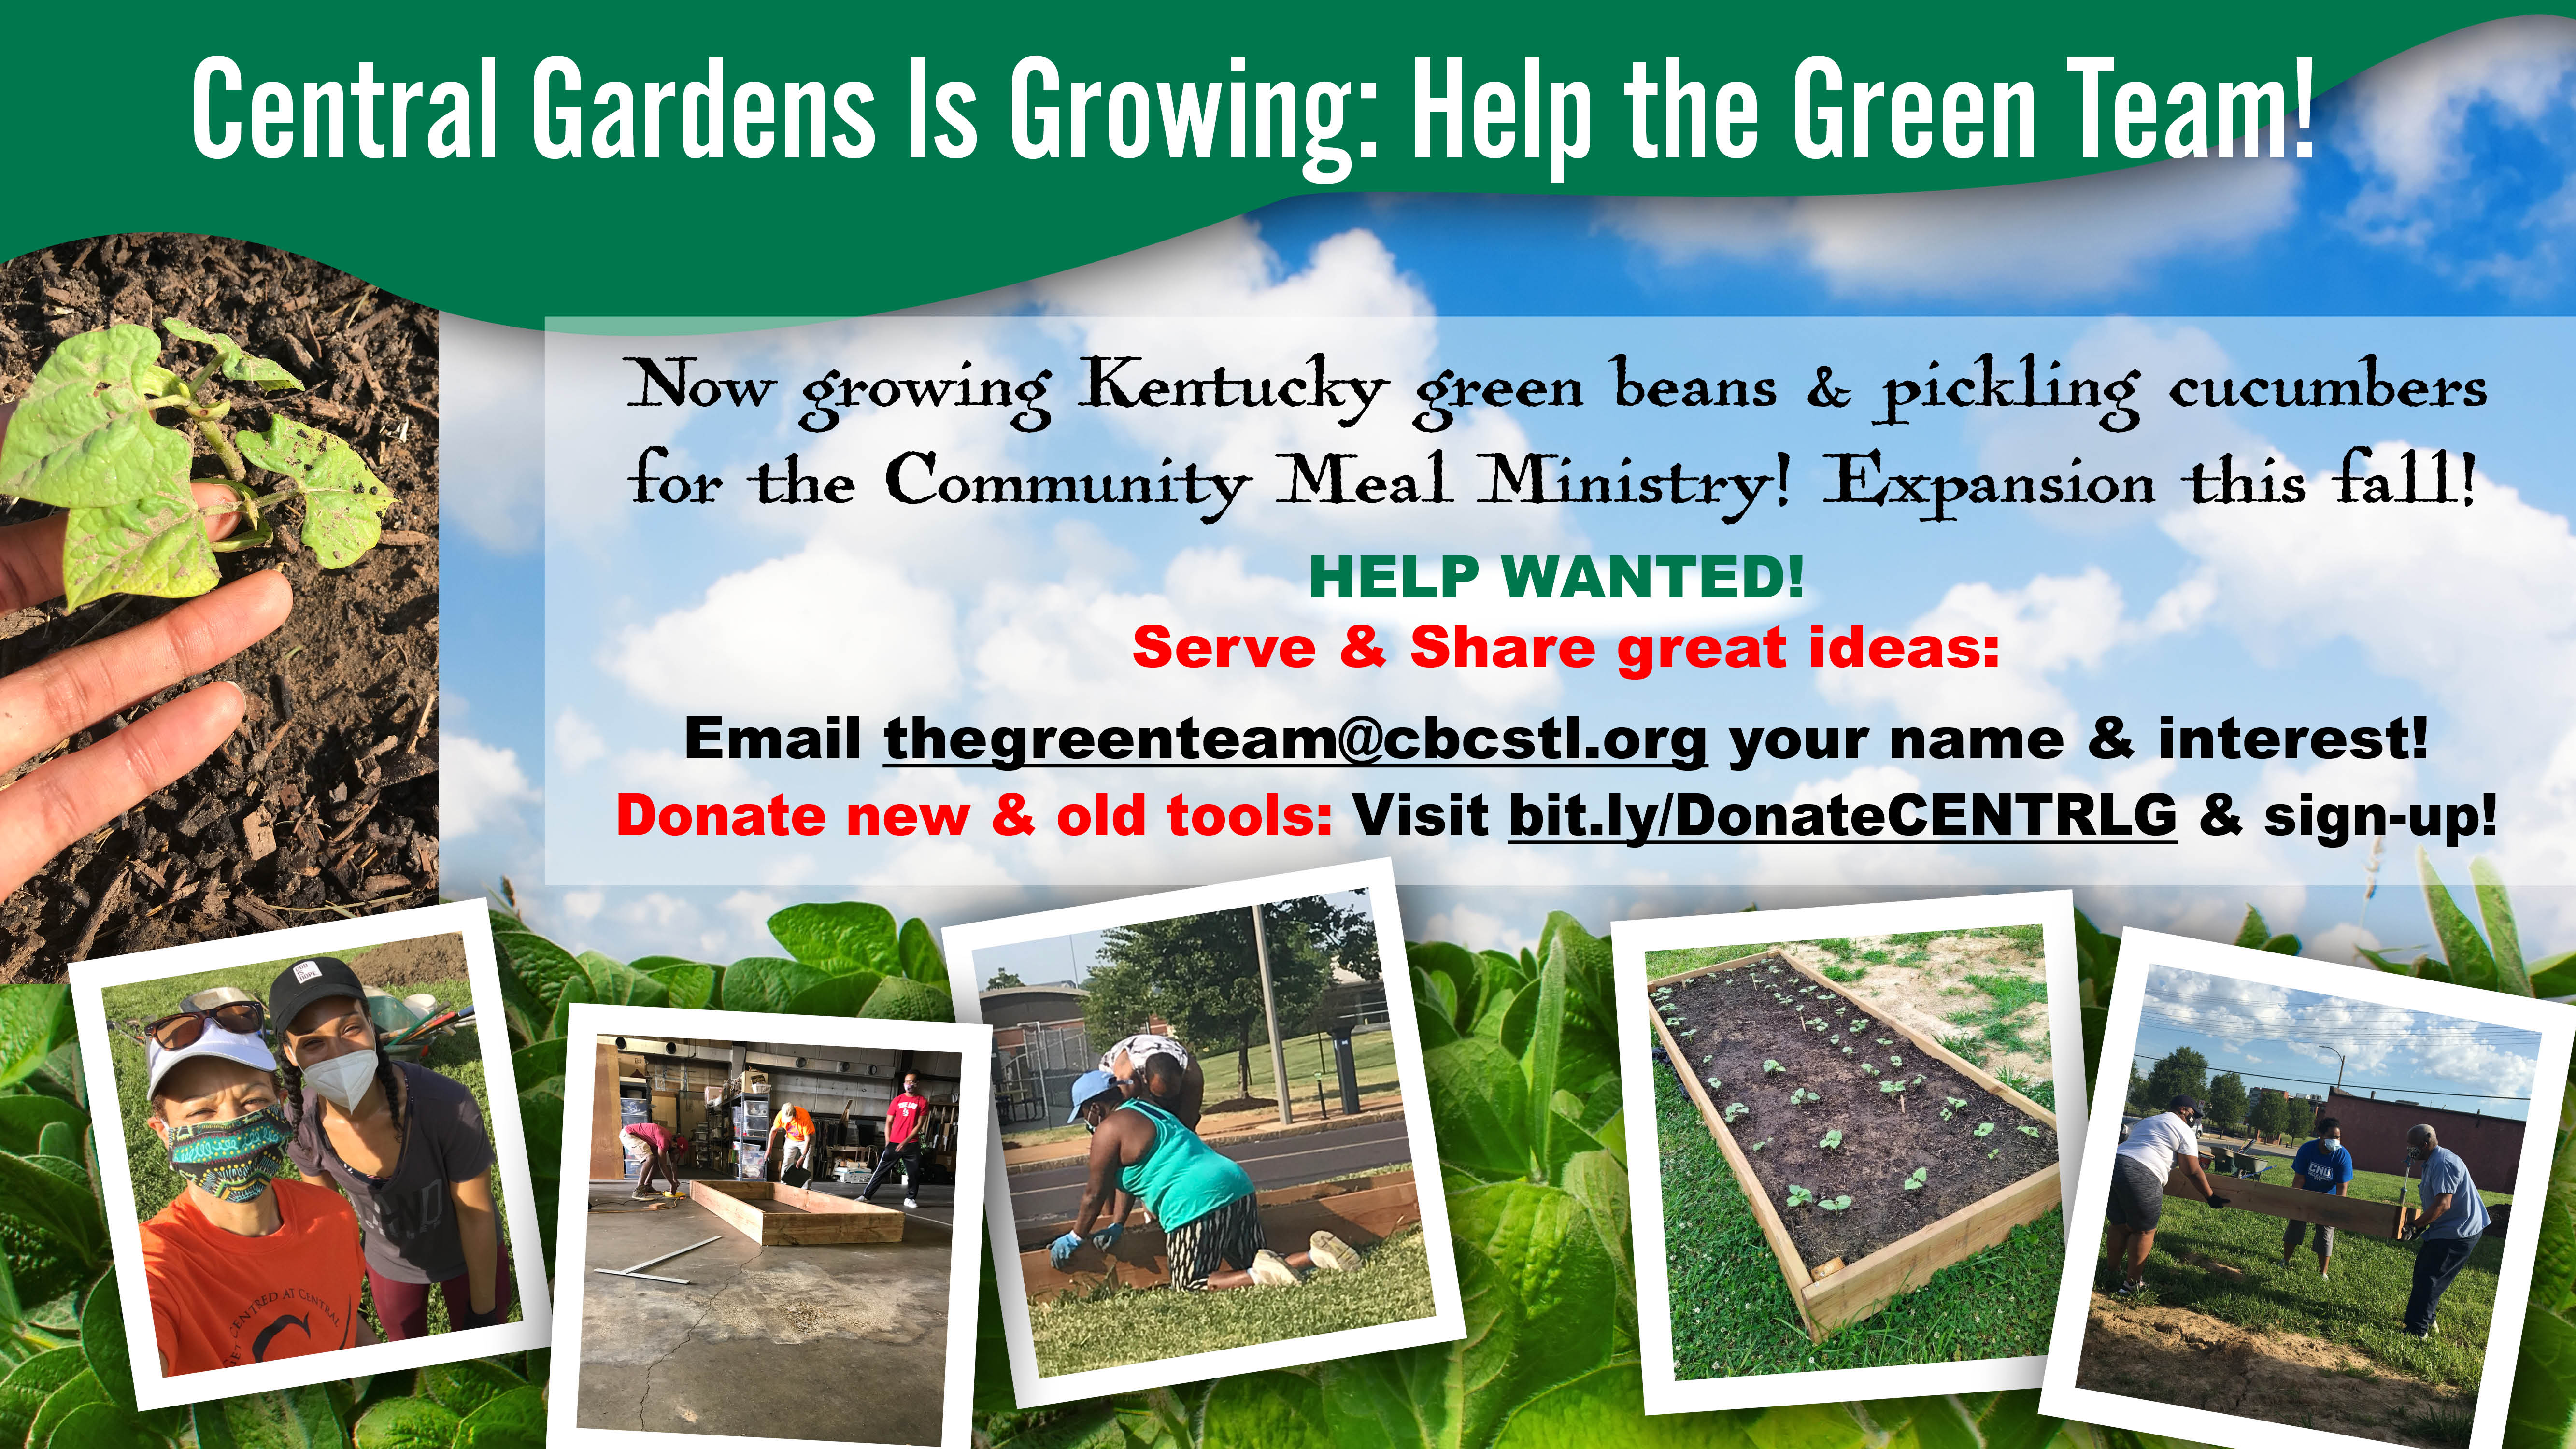 GREENTEAM ADJUly2020